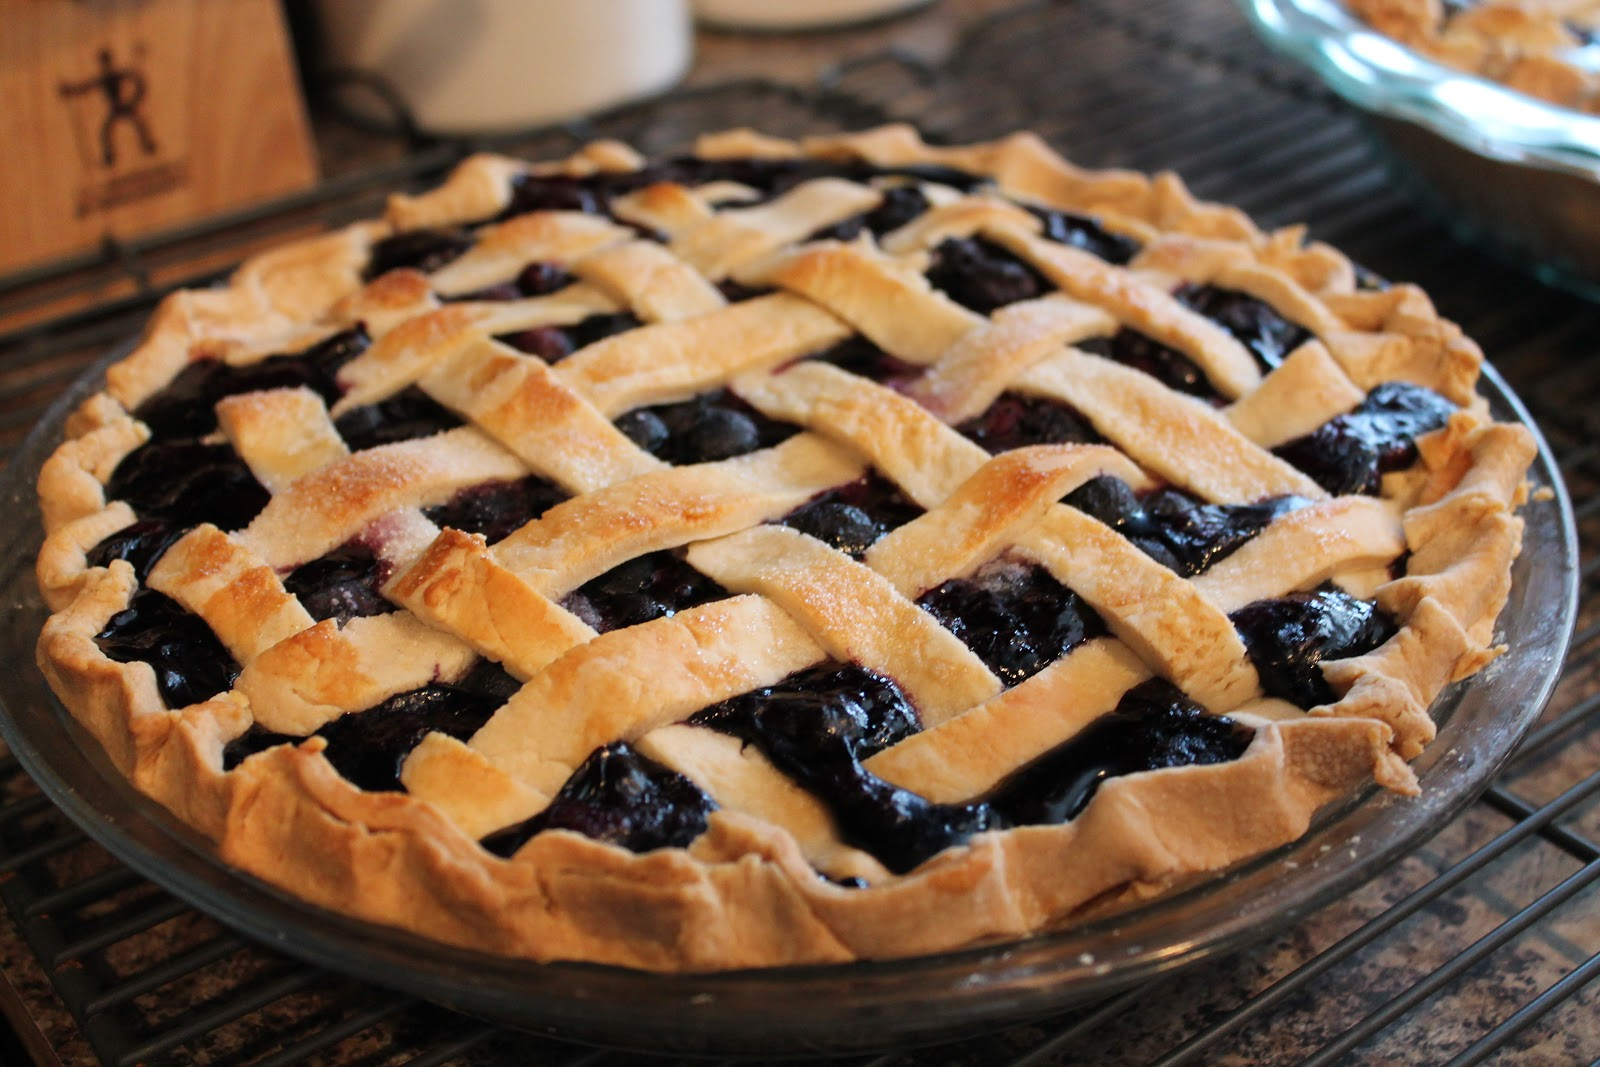 Visual of a blueberry pie celebrating National Blueberry Pie Day.